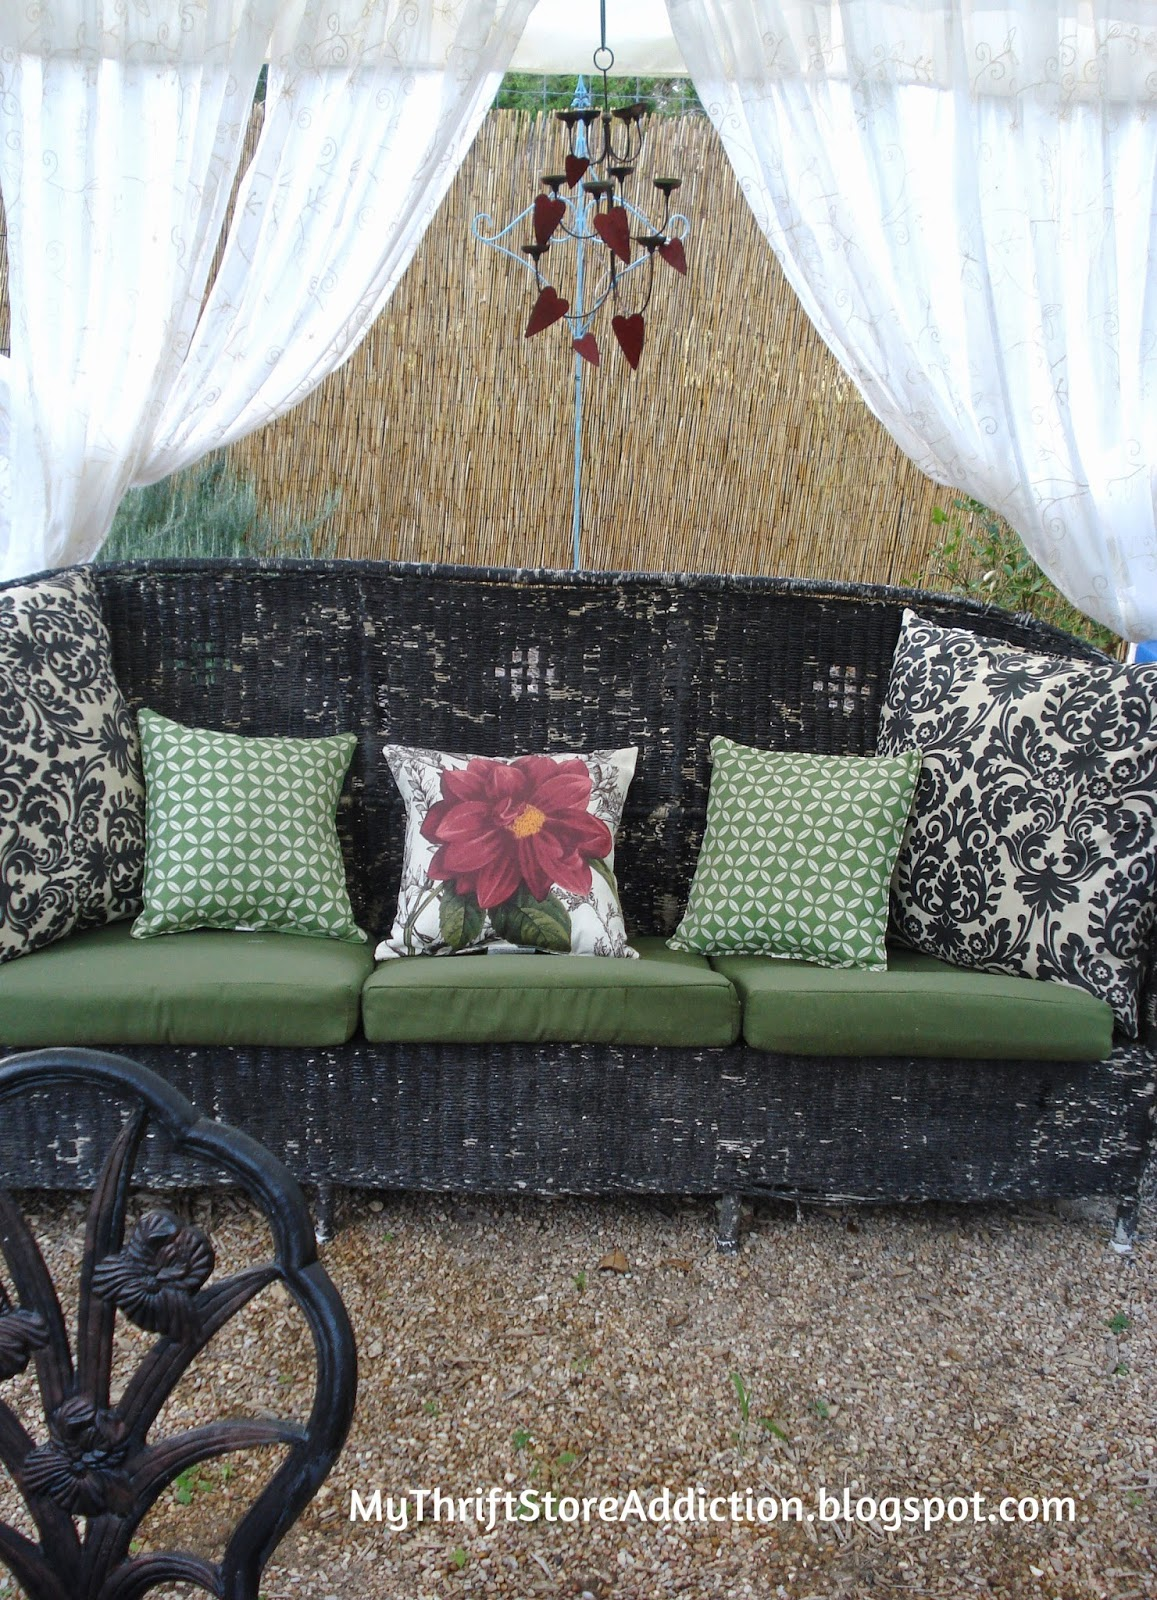 Welcome to Secret Garden: My Creative Space! mythriftstoreaddiction.blogspot.com An antique wicker sofa inside the scented gazebo surrounded by herbs